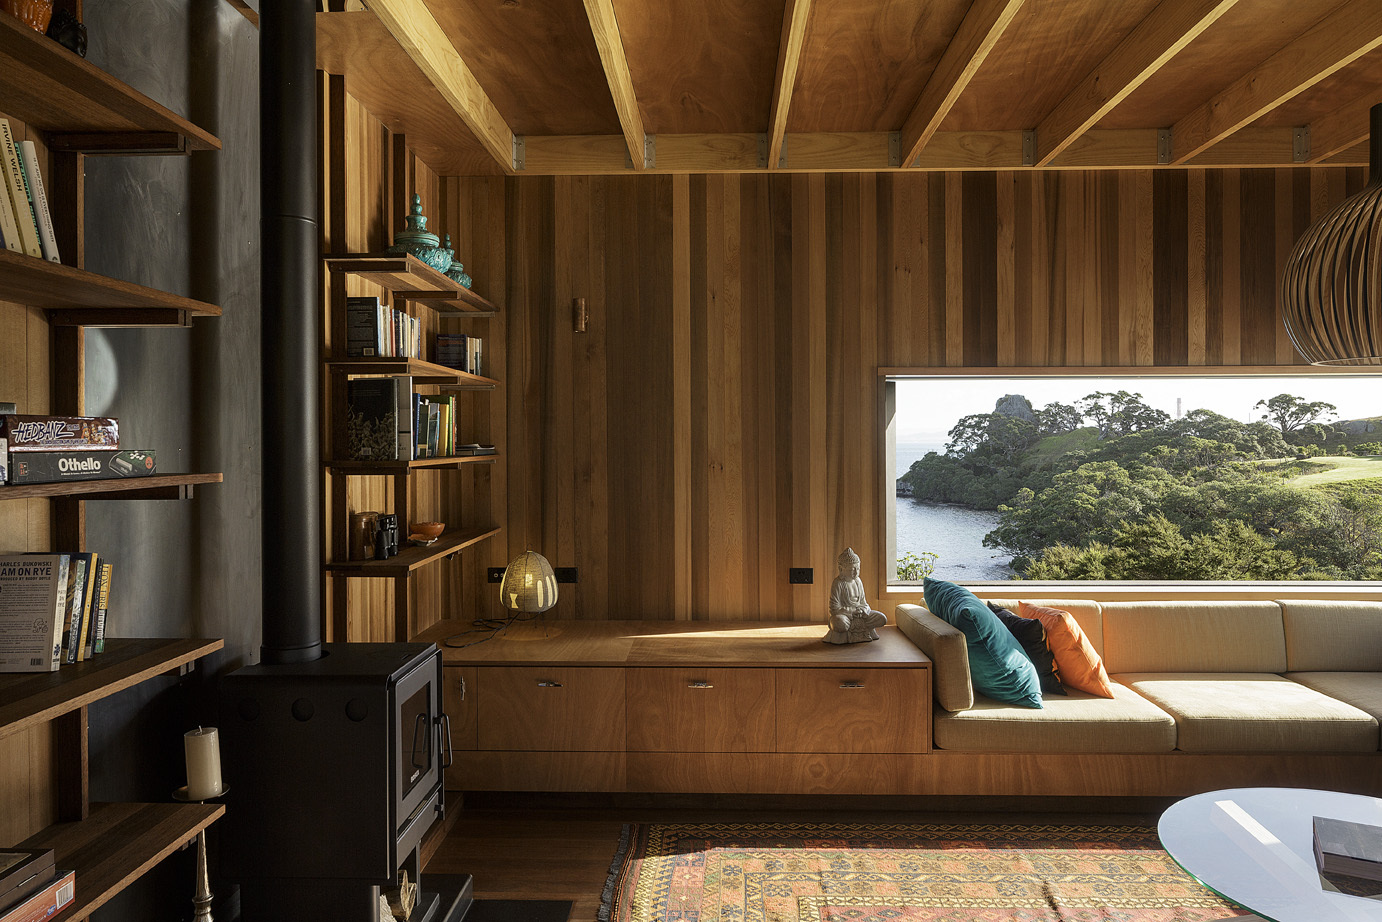 Castle rock house by herbst architects in whangarei new for House interior design new zealand